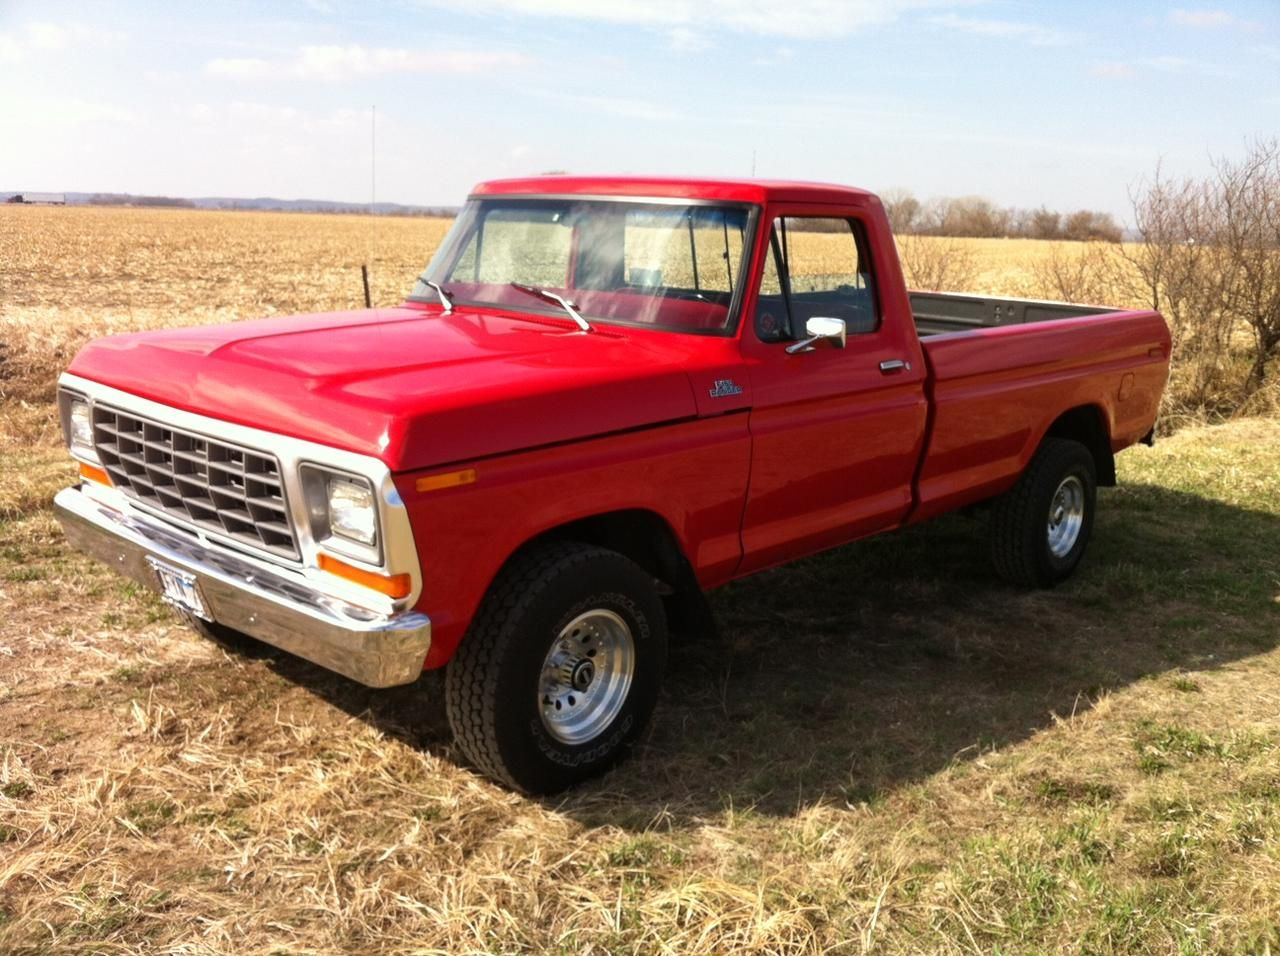 1979 ford f150 this is what i drove in hs loved it